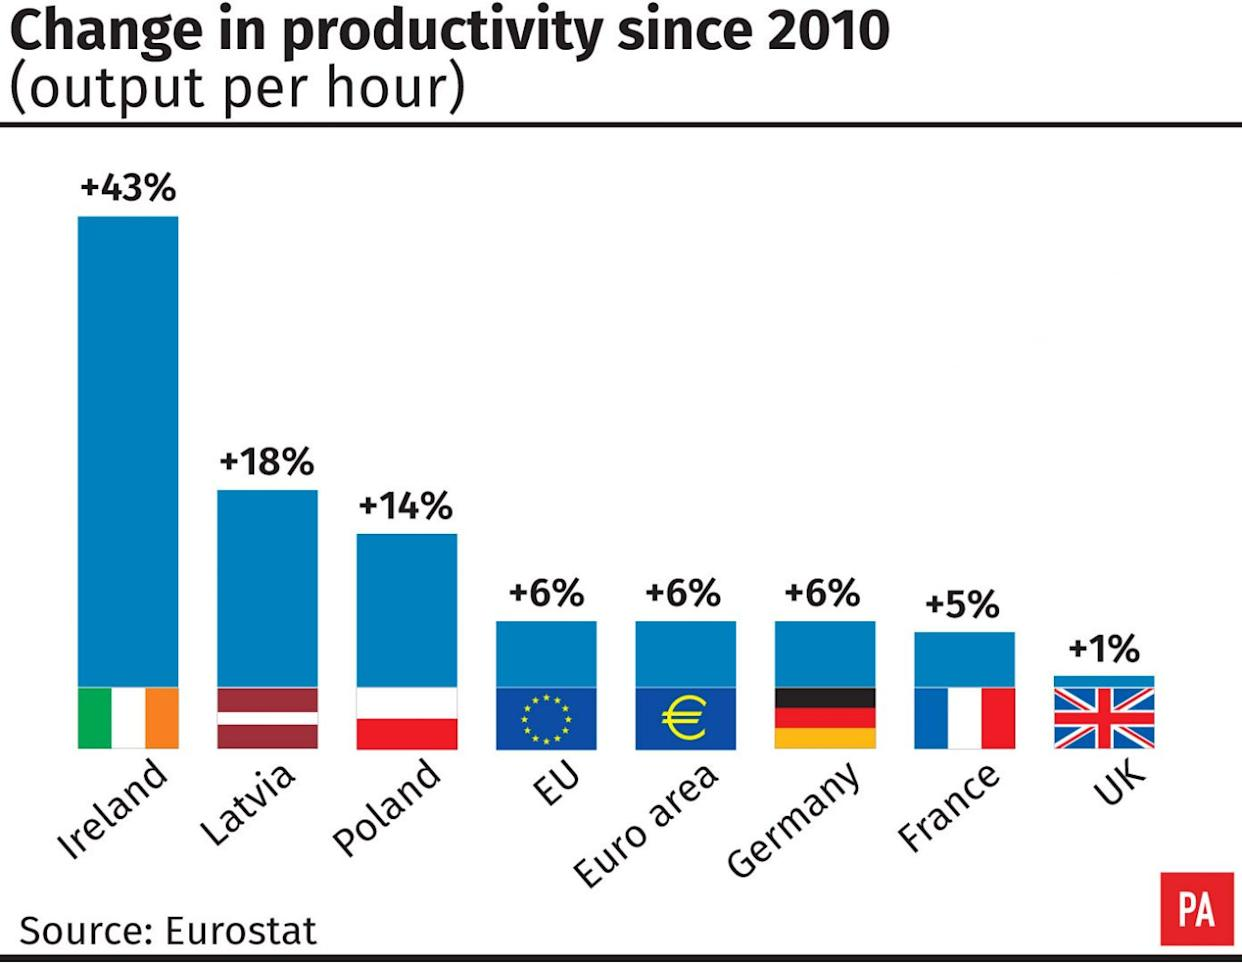 Change in productivity since 2010